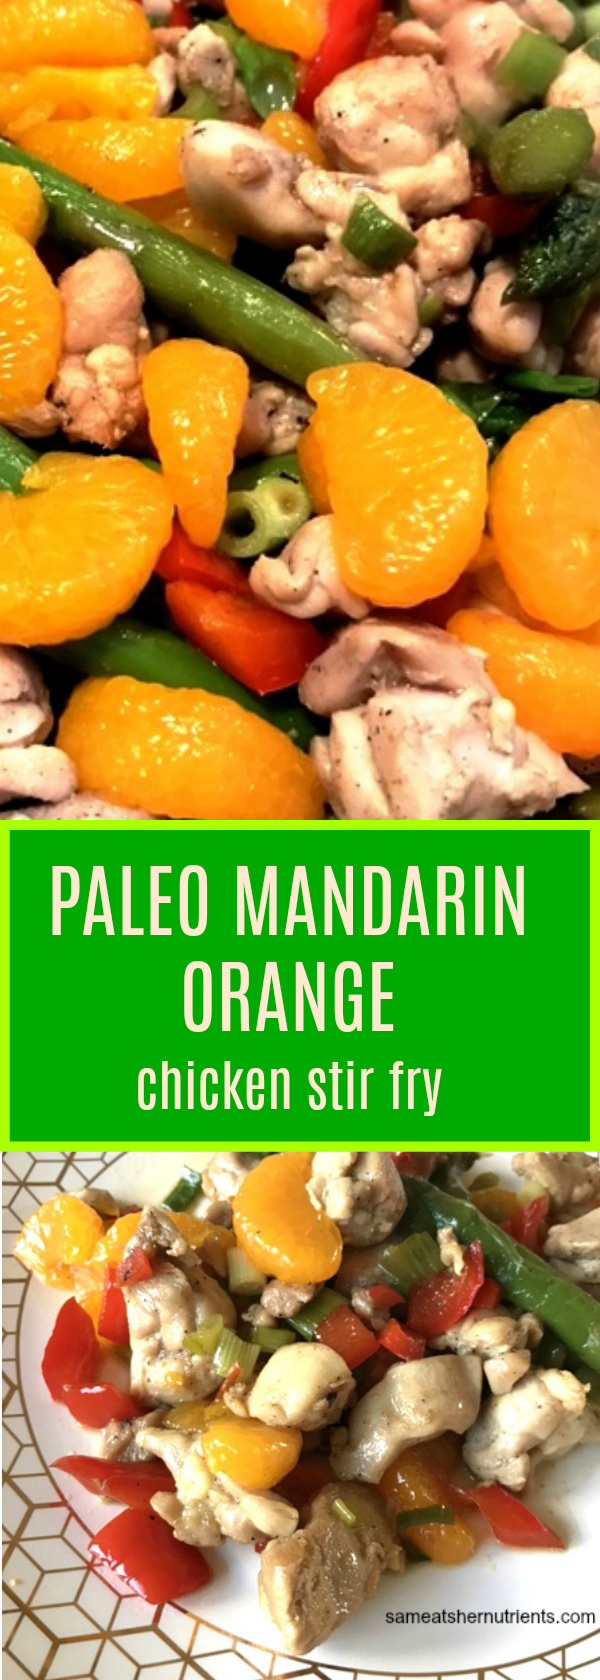 Mandarin Orange Chicken Stir Fry Gluten Free, Paleo